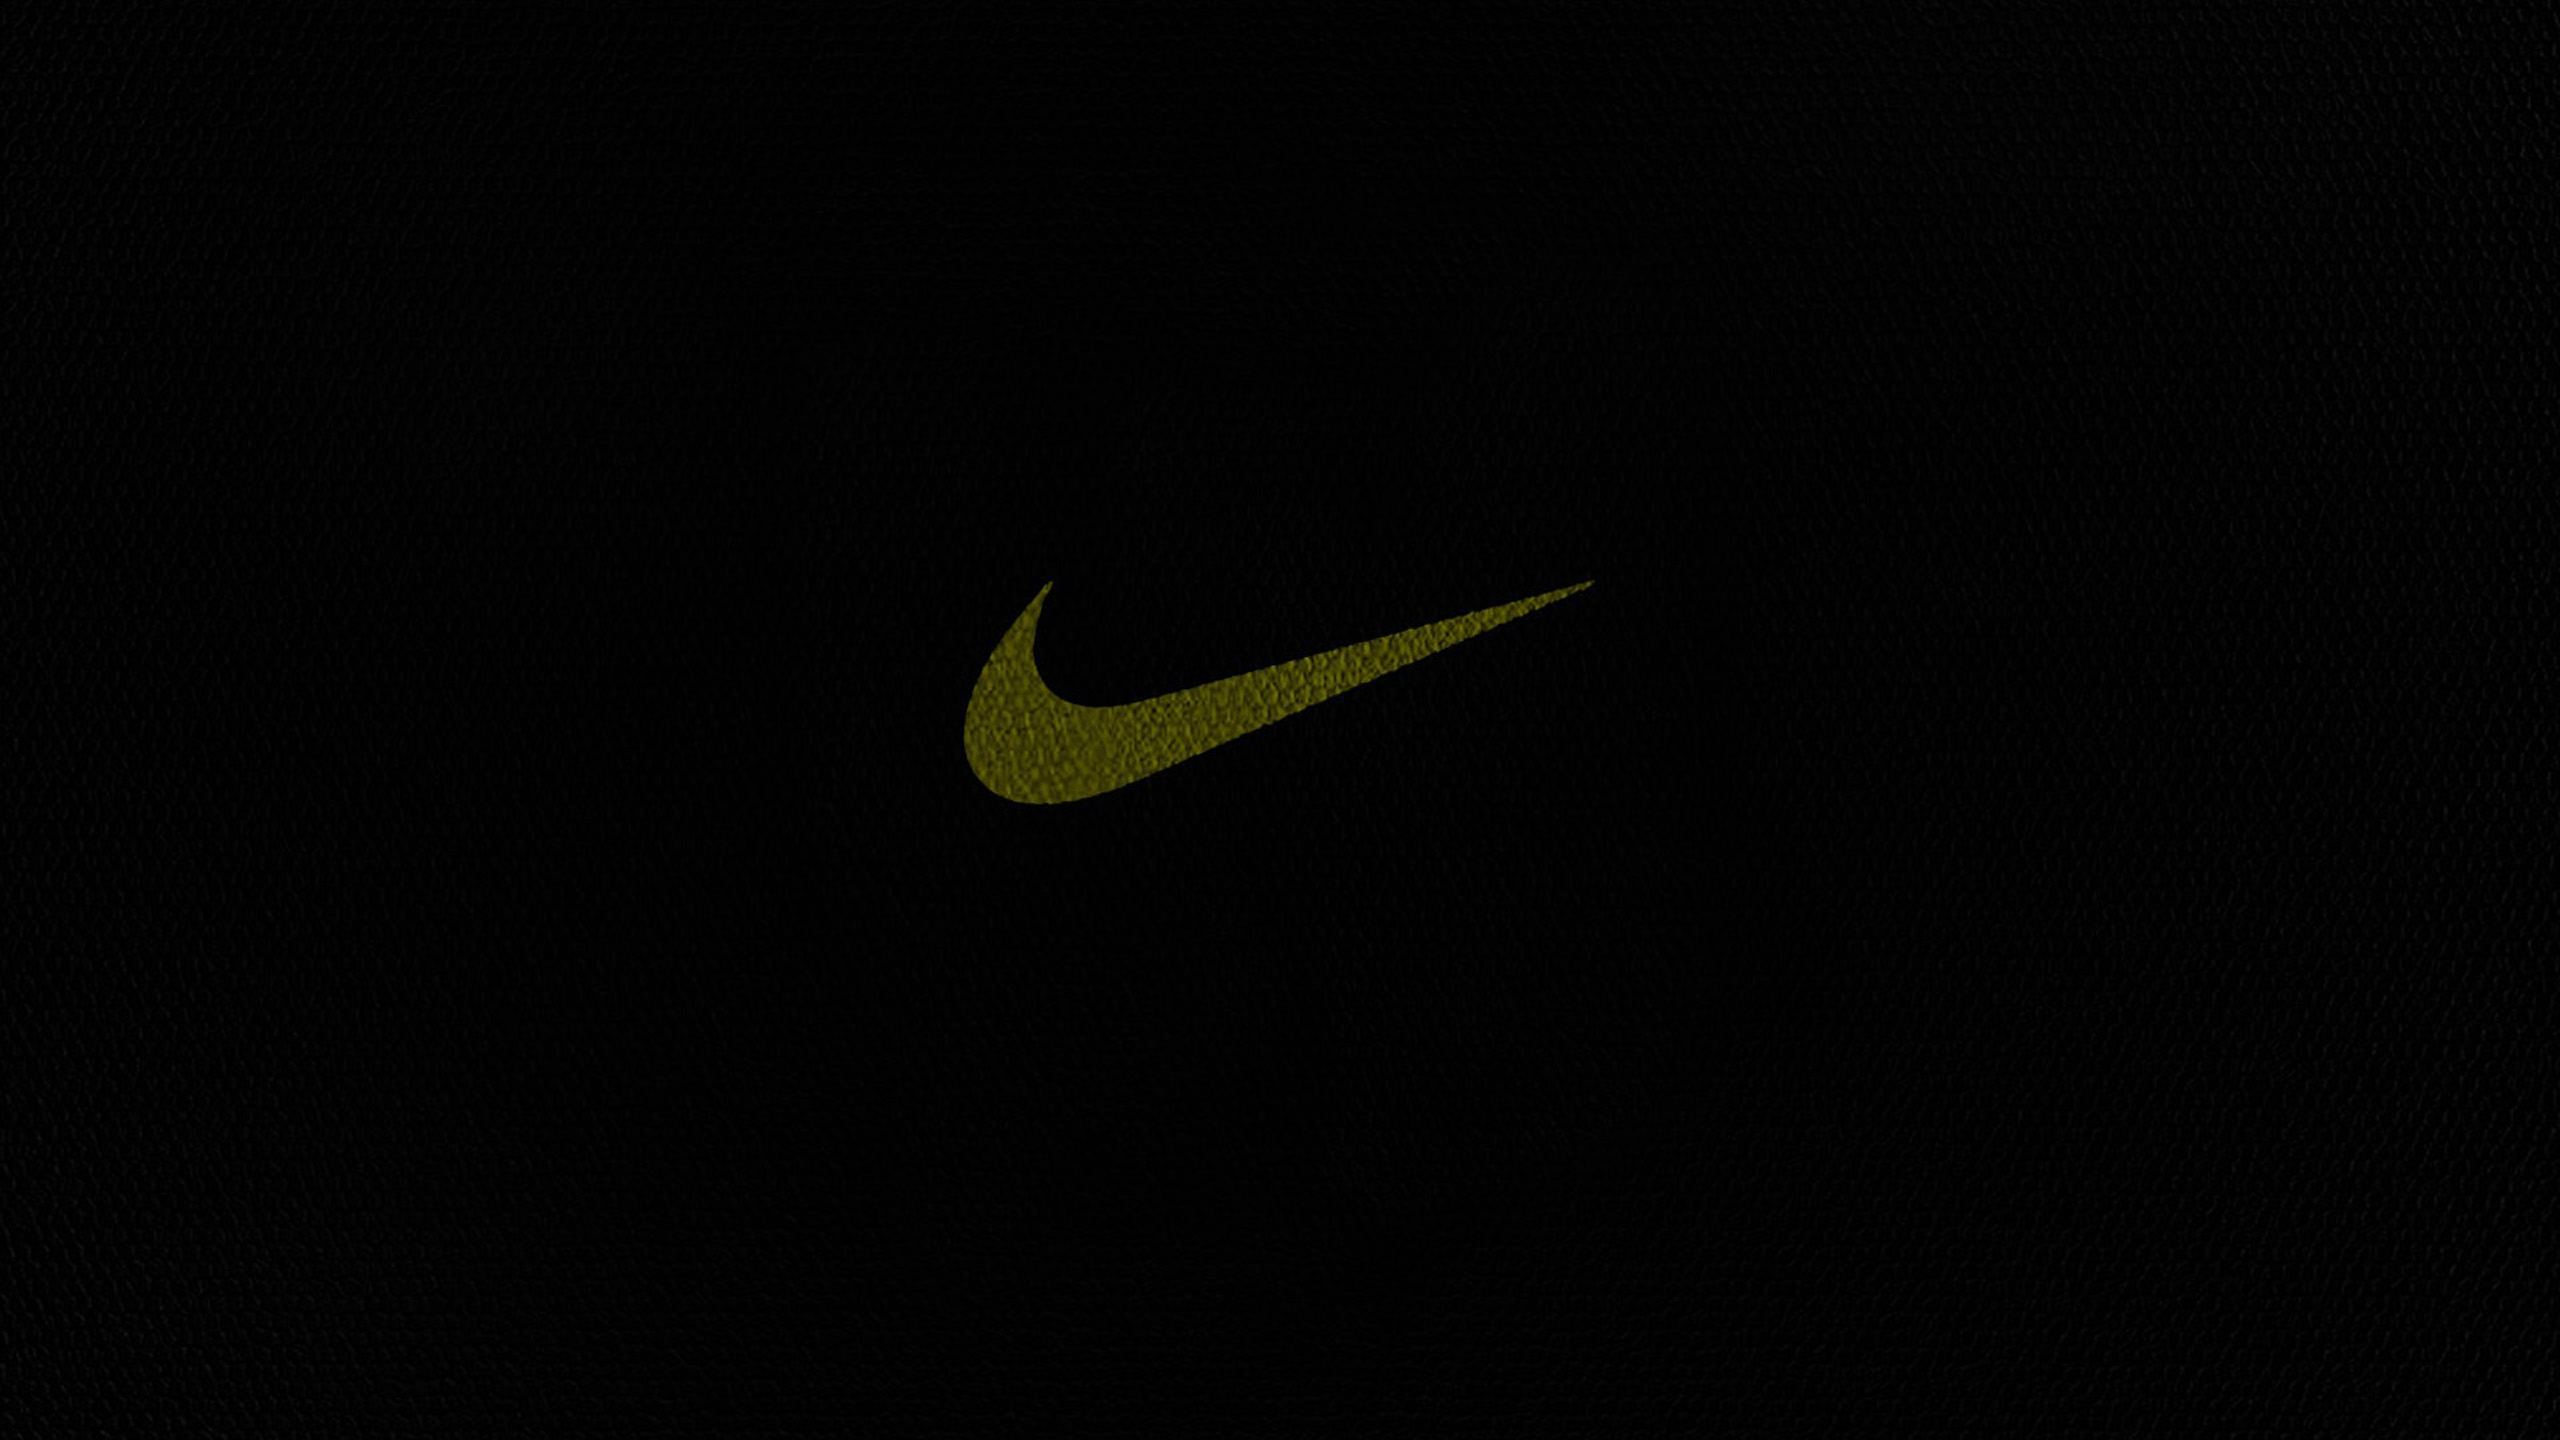 Nike Football Wallpapers High Definition Desktop Images 2560x1440